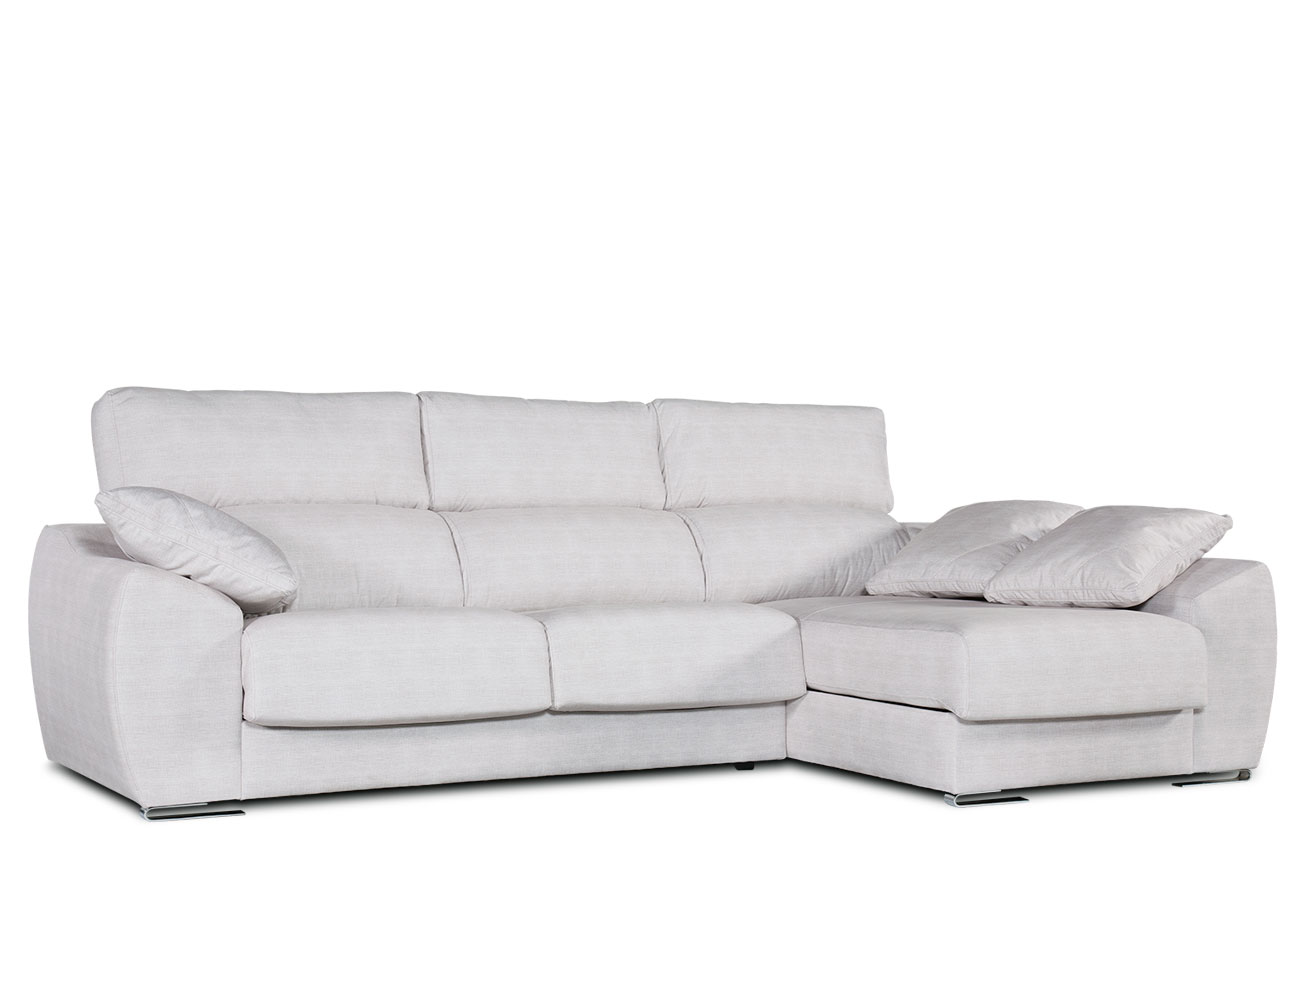 Sofa chaiselongue moderno blanco 12